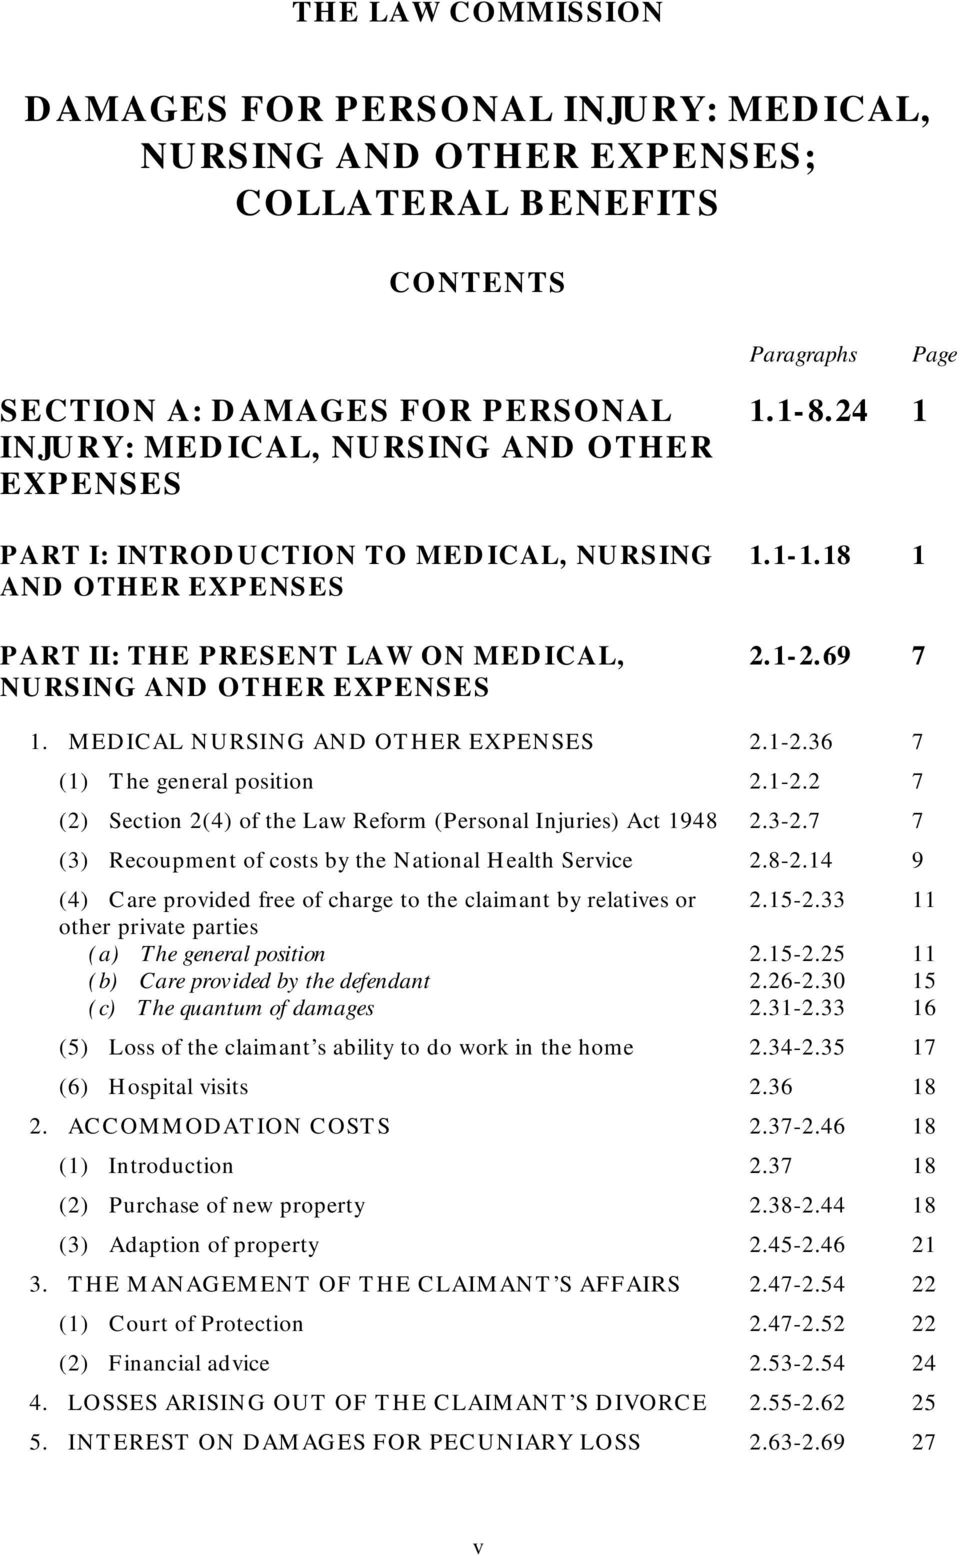 MEDICAL NURSING AND OTHER EXPENSES 2.1-2.36 7 (1) The general position 2.1-2.2 7 (2) Section 2(4) of the Law Reform (Personal Injuries) Act 1948 2.3-2.